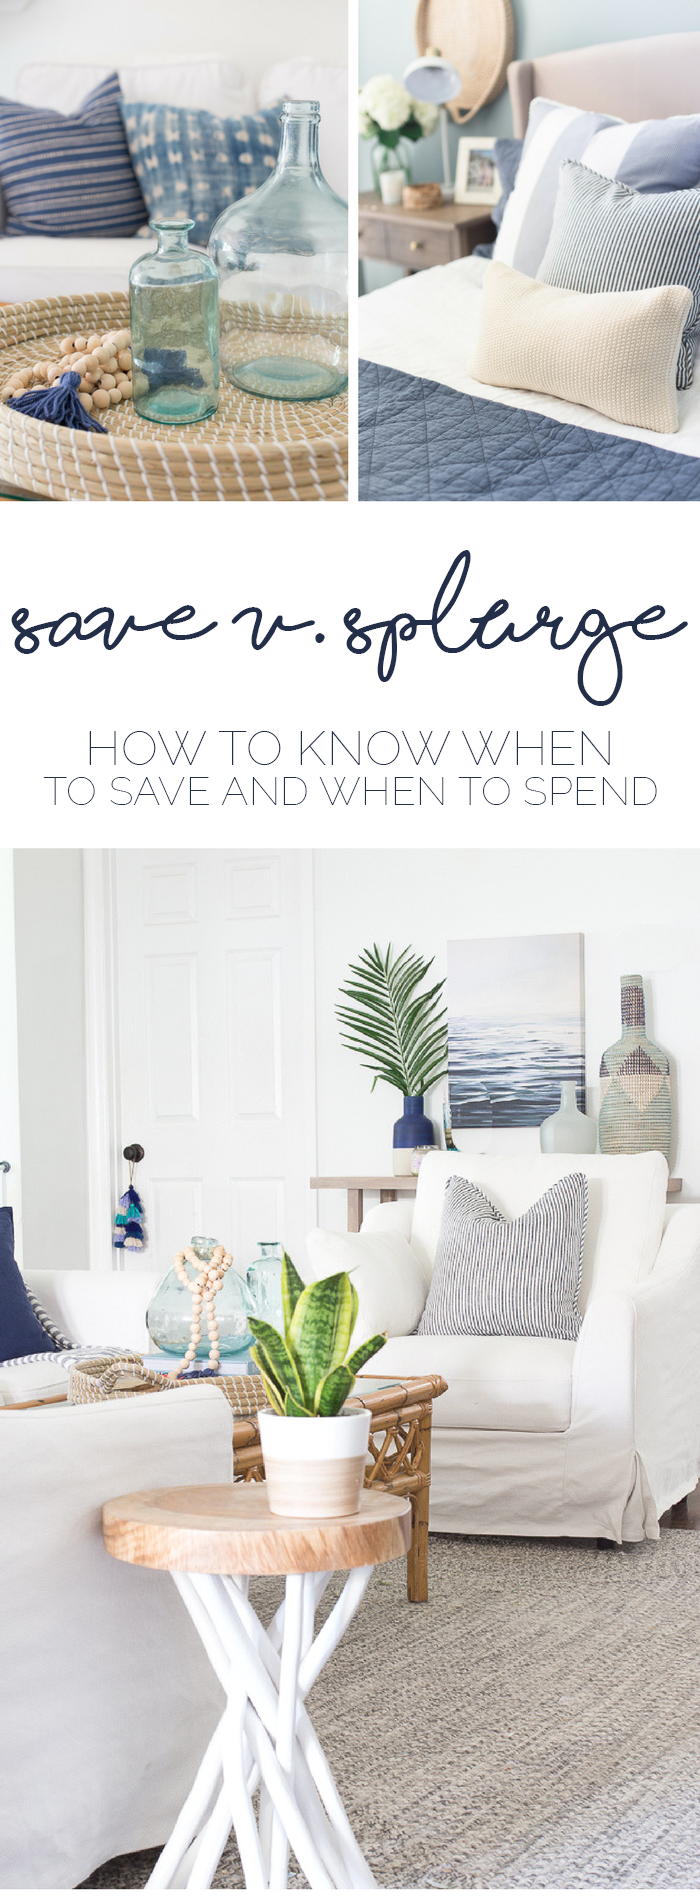 Save or Splurge on Home Furnishings